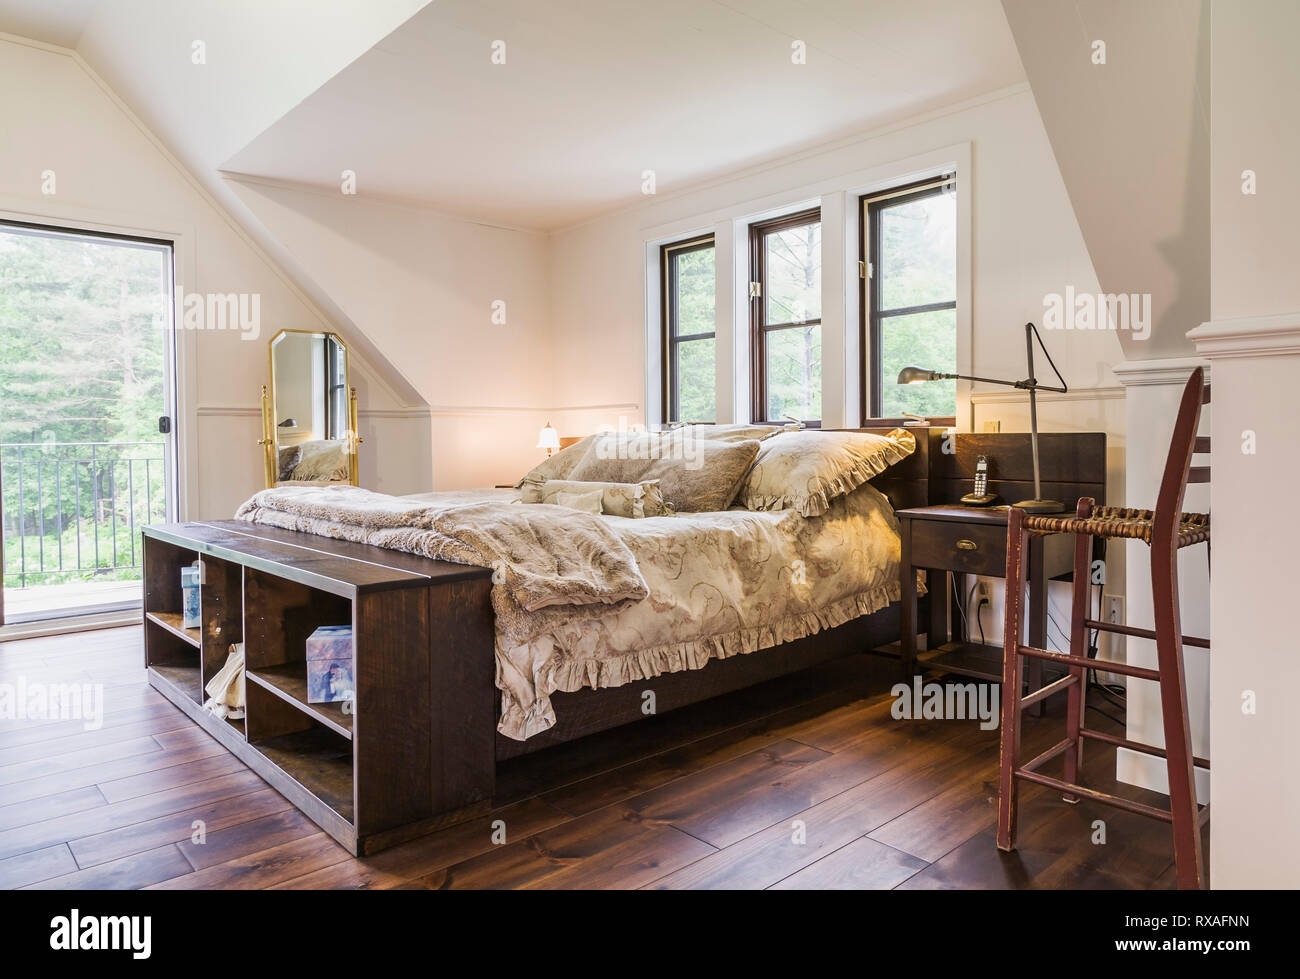 Wood Frame King Size Bed With Flowery Bedspread Brass Mirror And Antique Wooden High Chair In Master Bedroom On Upper Floor Inside A New Hampton Style Home Quebec Canada This Image Is Property